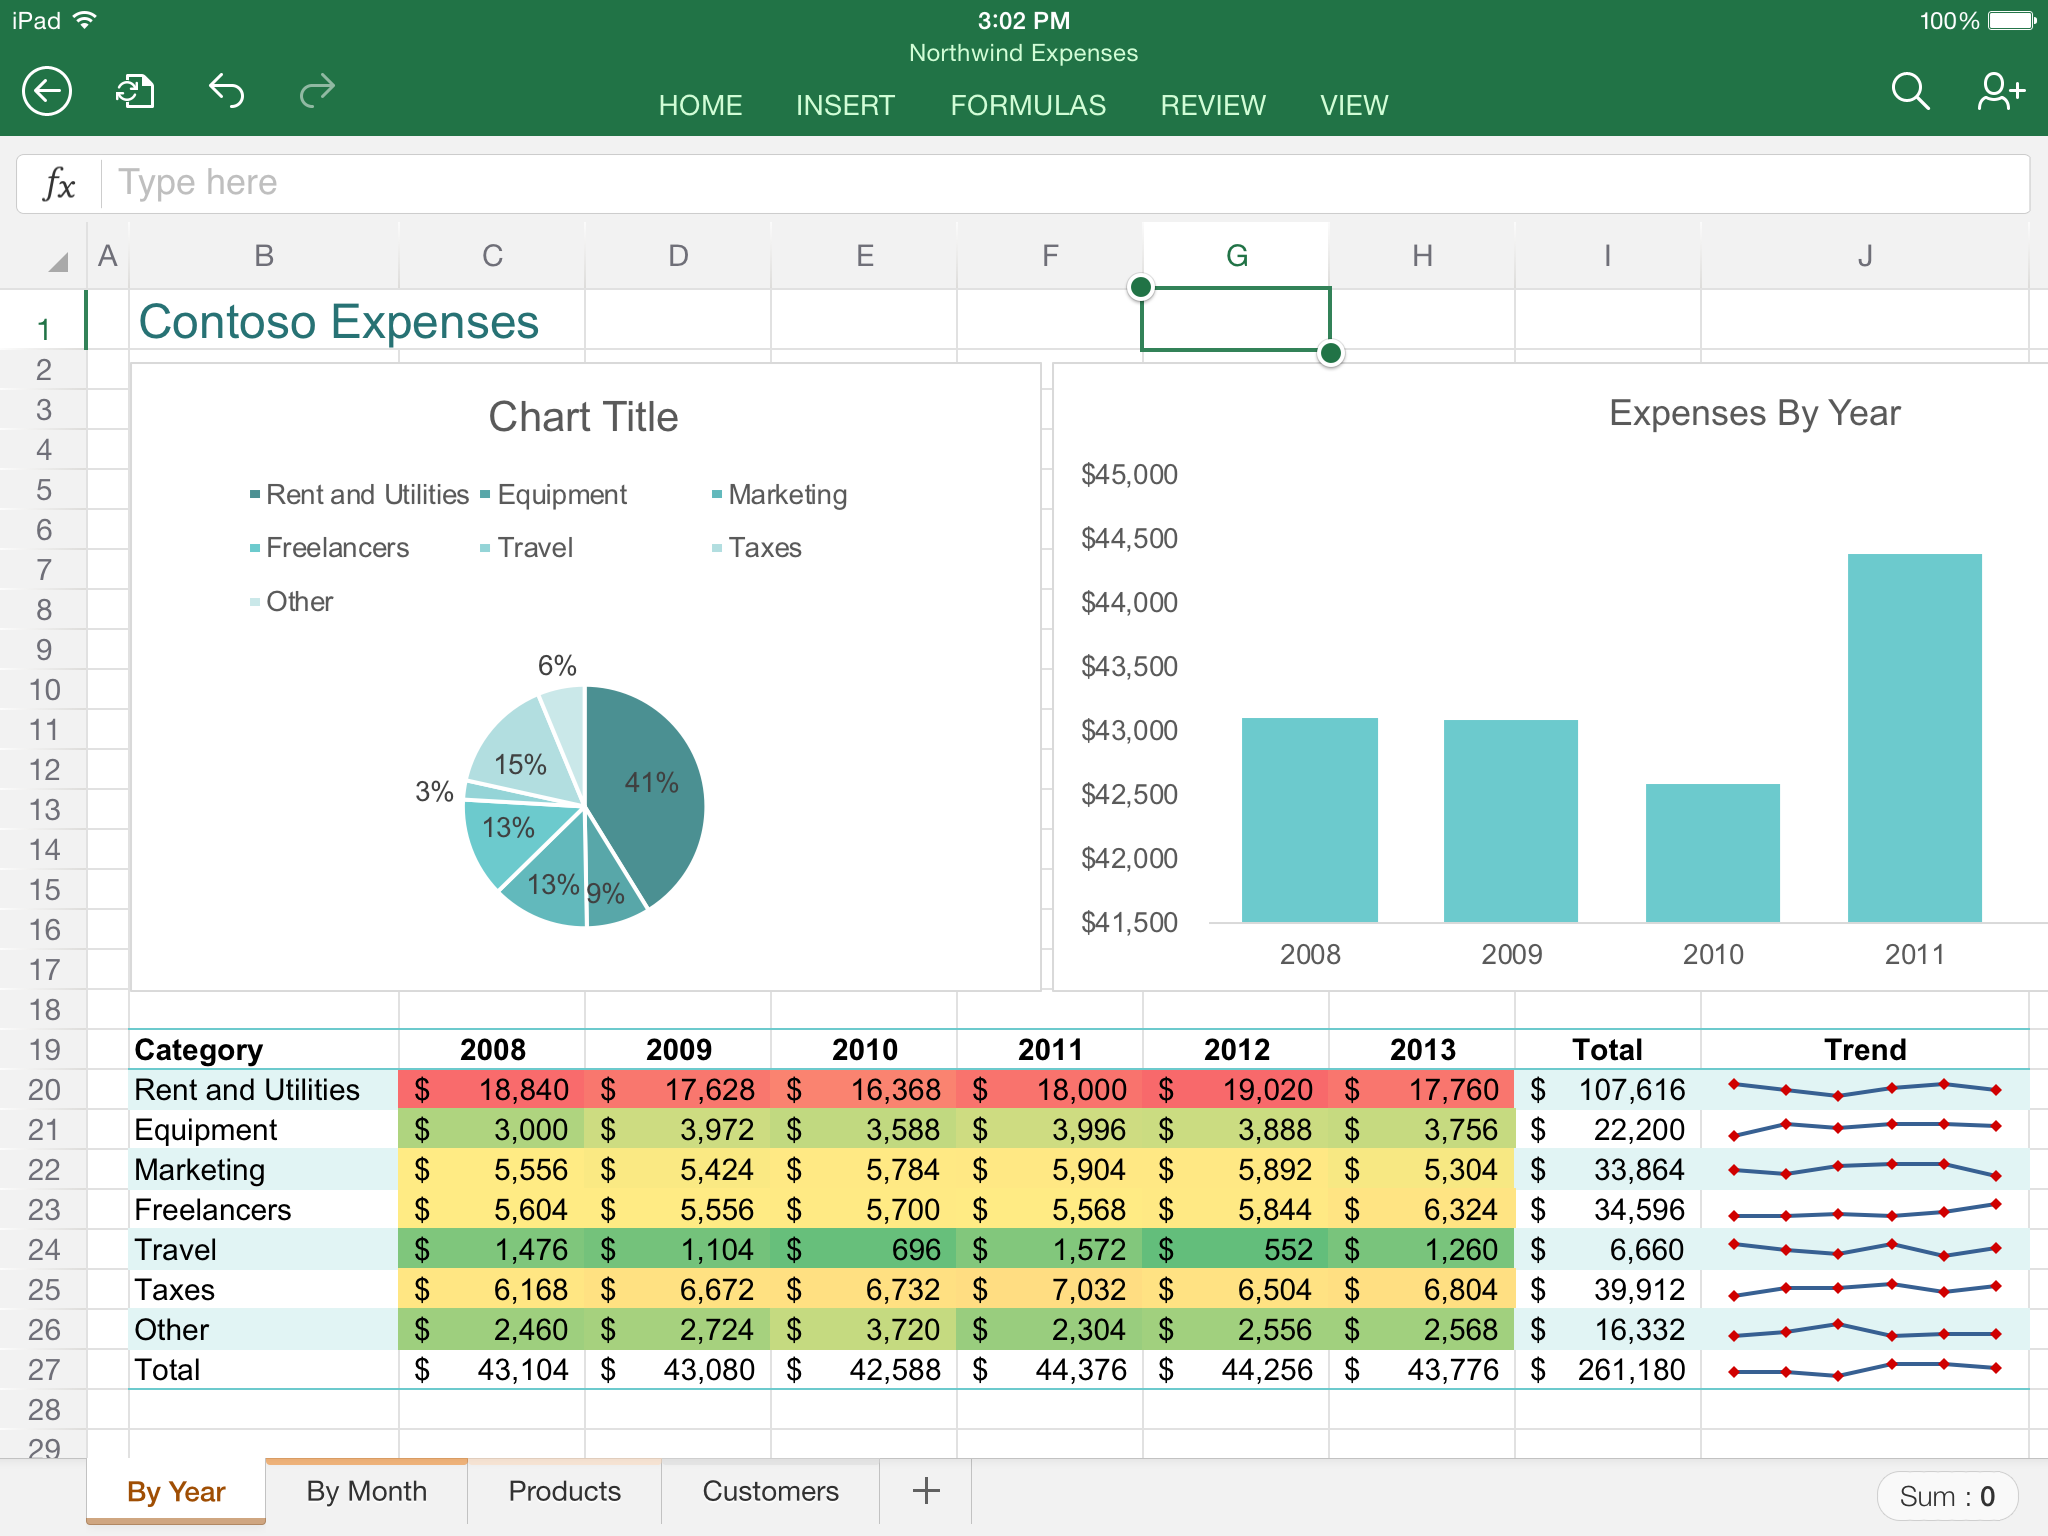 Ediblewildsus  Marvelous App Highlight Excel  Mobile Digital Now With Exquisite Excel In Action With Appealing Predictive Analytics Excel Also Convert Numbers To Text Excel In Addition Dat To Excel And Excel Sort And Filter As Well As Excel Concatenate Rows Additionally Add Months Excel From Youstonybrookedu With Ediblewildsus  Exquisite App Highlight Excel  Mobile Digital Now With Appealing Excel In Action And Marvelous Predictive Analytics Excel Also Convert Numbers To Text Excel In Addition Dat To Excel From Youstonybrookedu